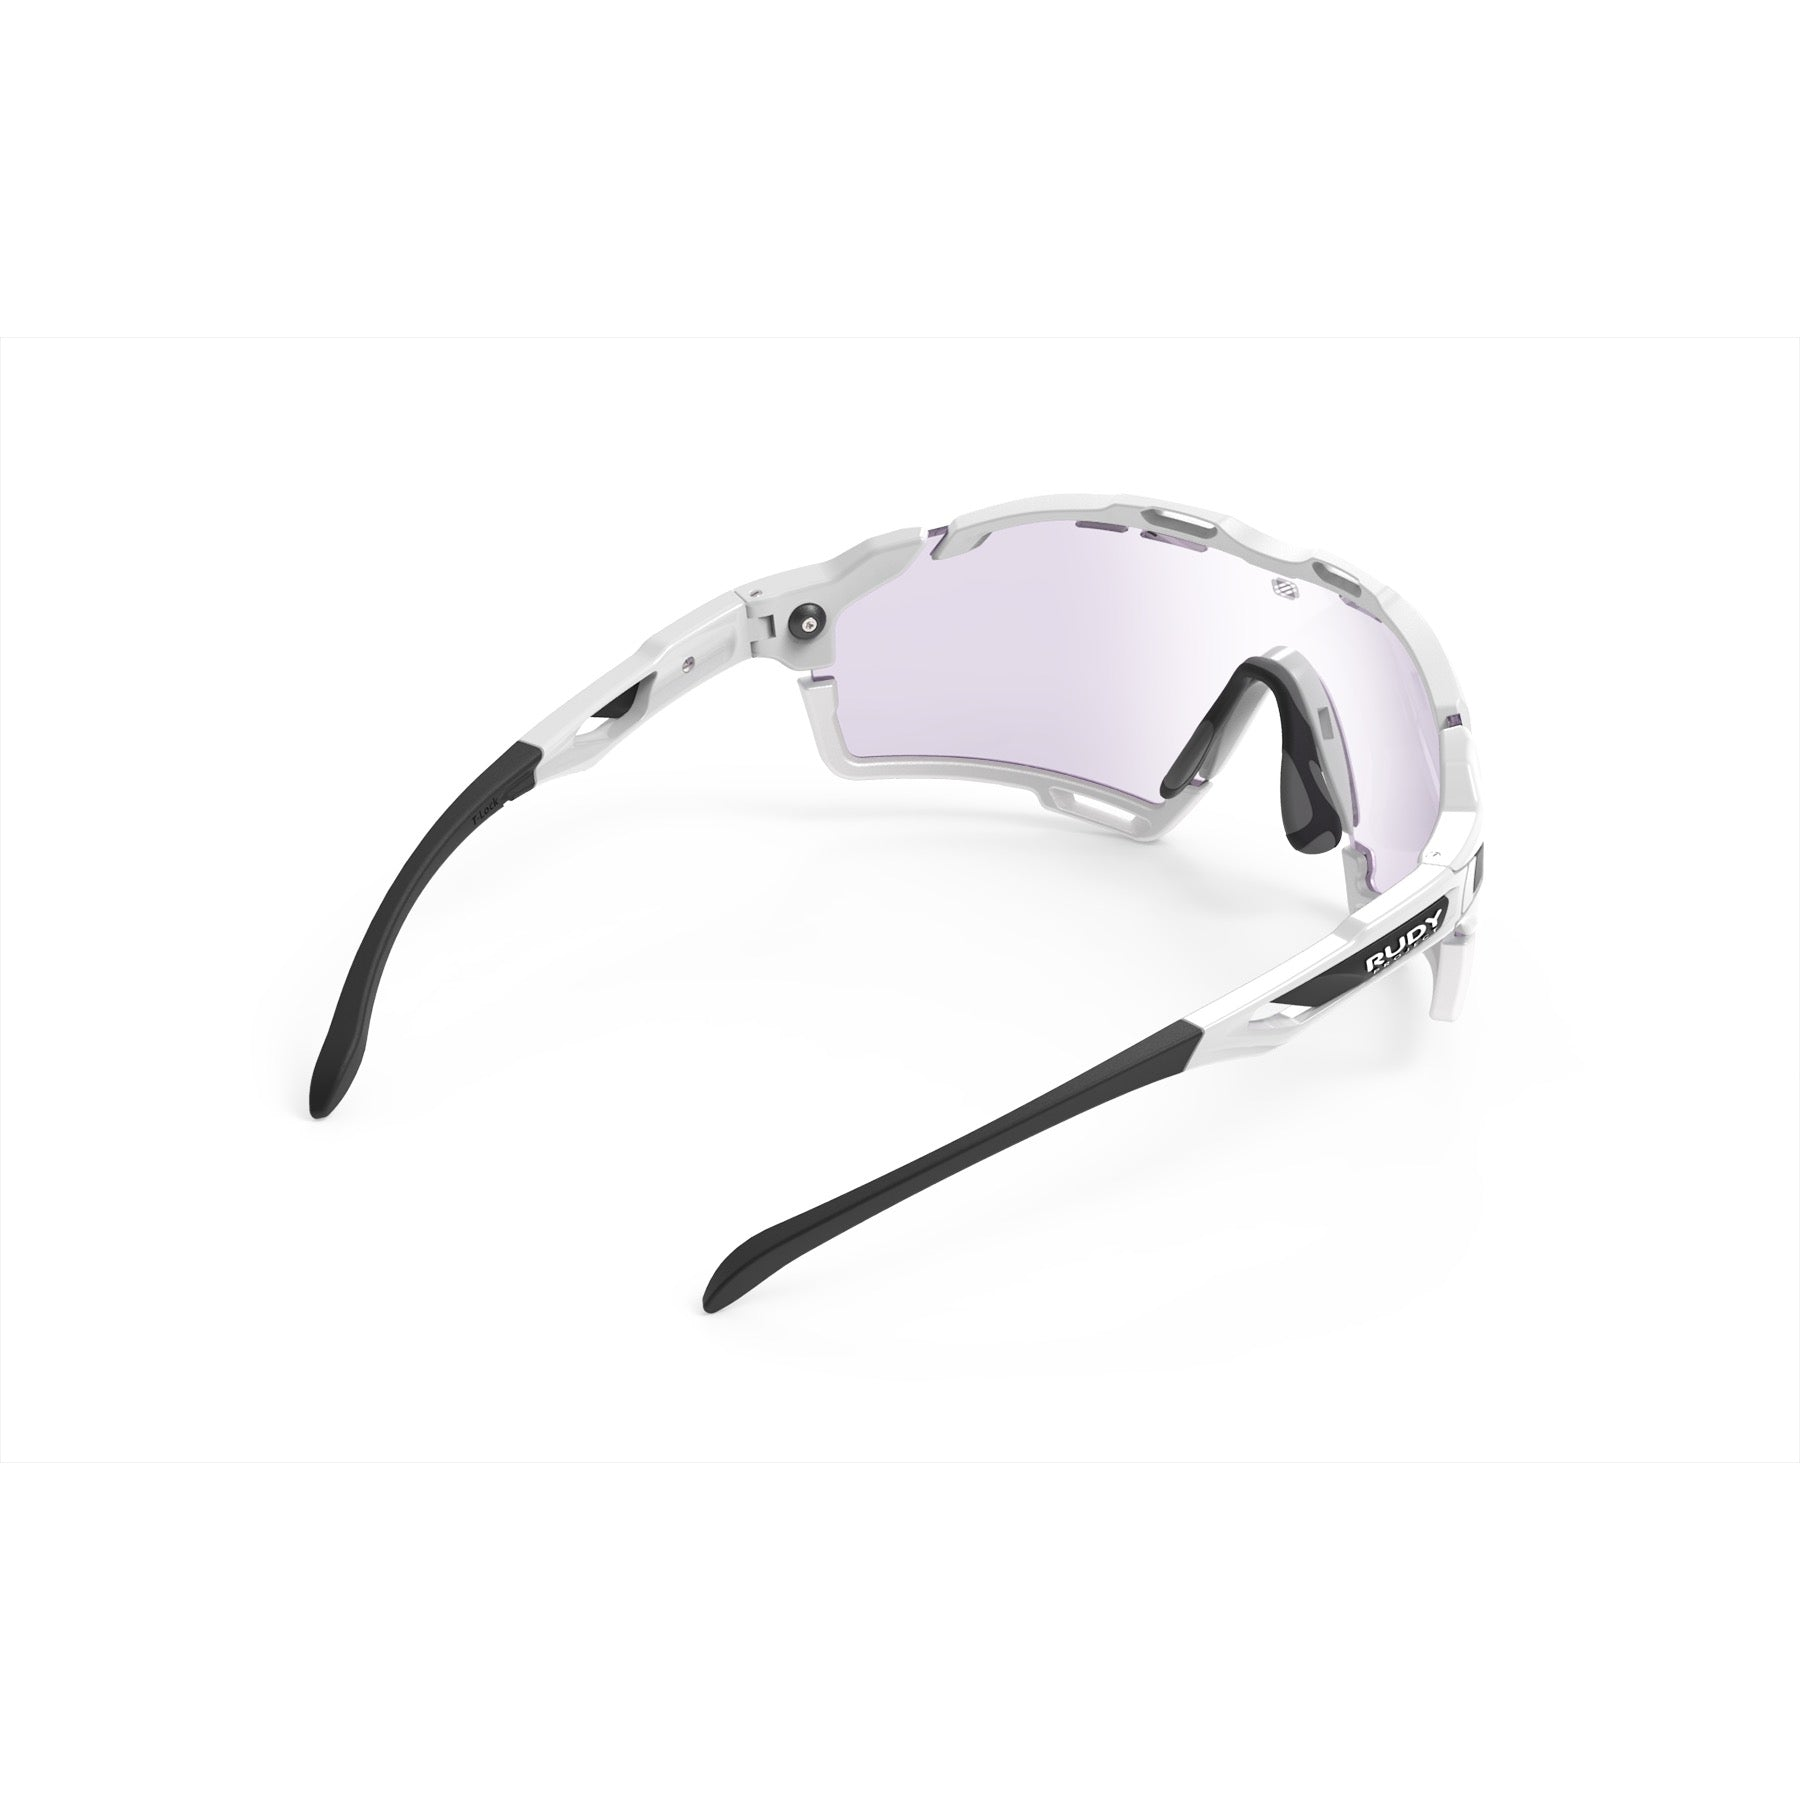 Rudy Project - Cutline - frame color: White Gloss - lens color: ImpactX-2 Photochromic Clear to Laser Purple - Bumper Color: White - photo angle: Top Back Angle Variant Hover Image